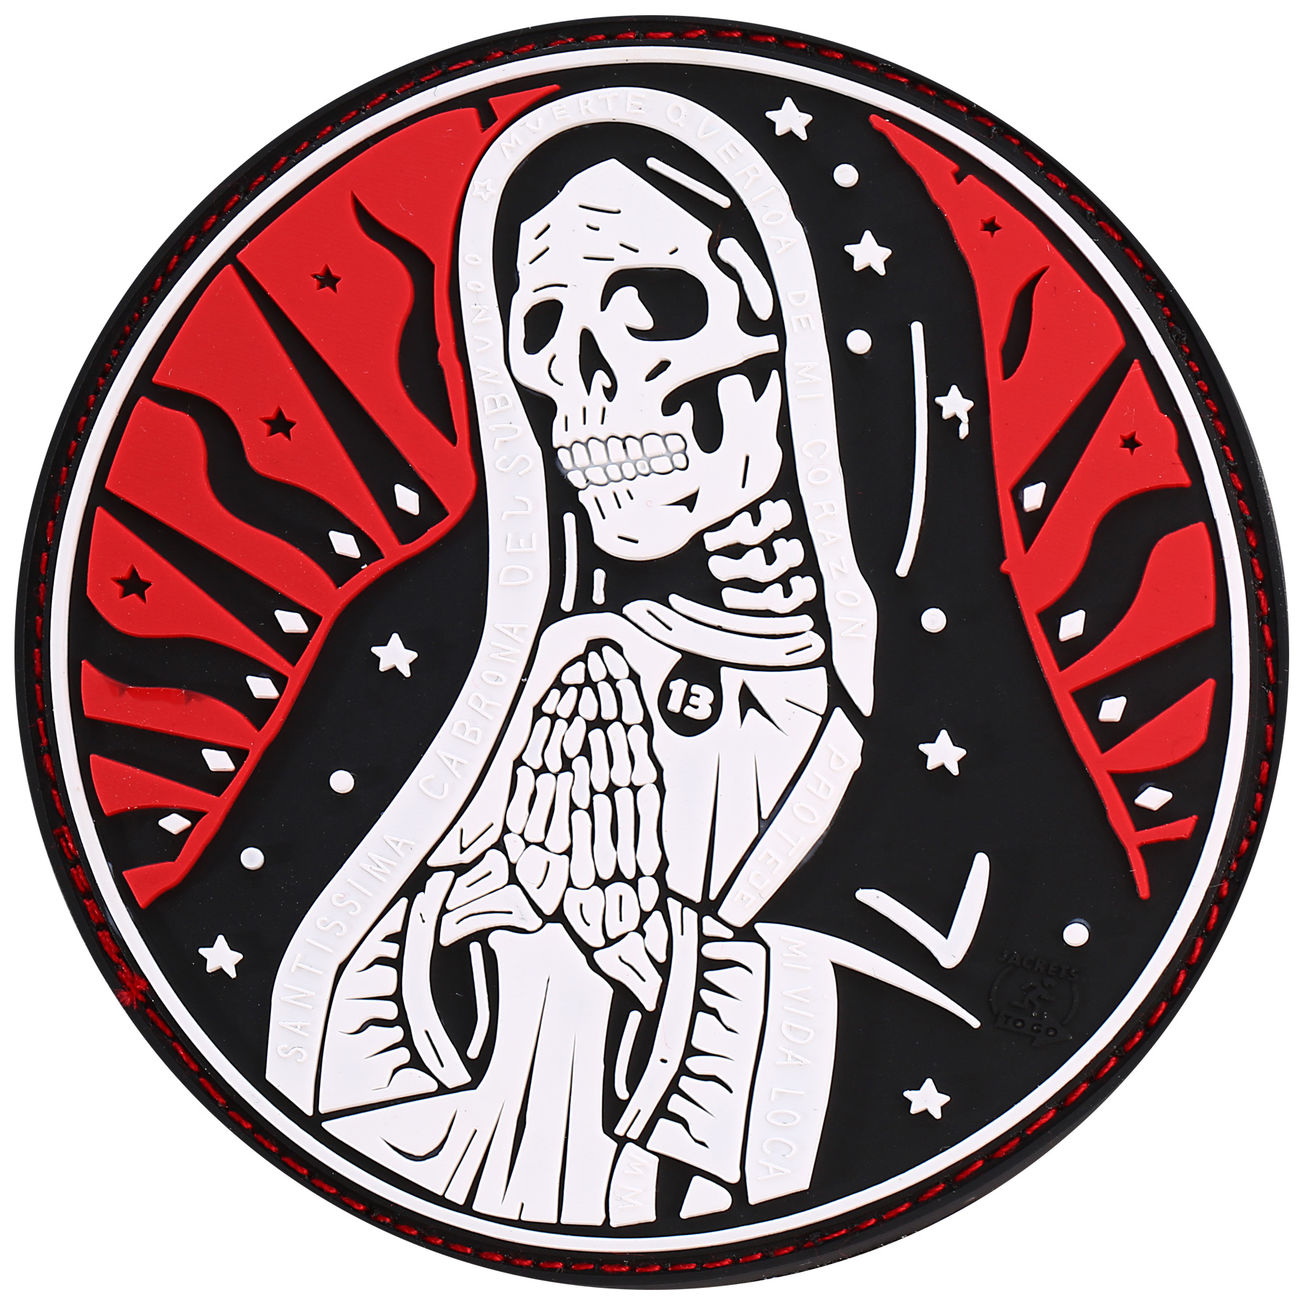 Jtg 3d Rubber Patch Santa Muerte Patch Redsky Günstig Kaufen Kotte